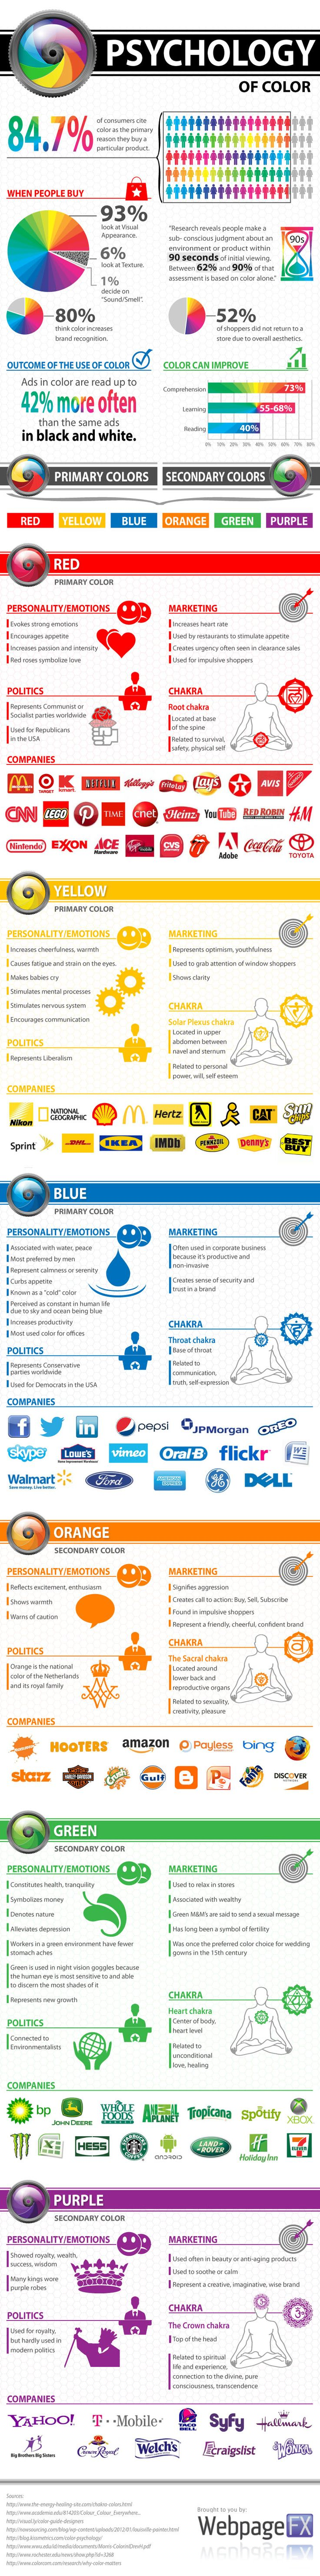 Curious about the psychology of color? Wondering how color influences marketing and sales? Learn to use color better from this infographic!